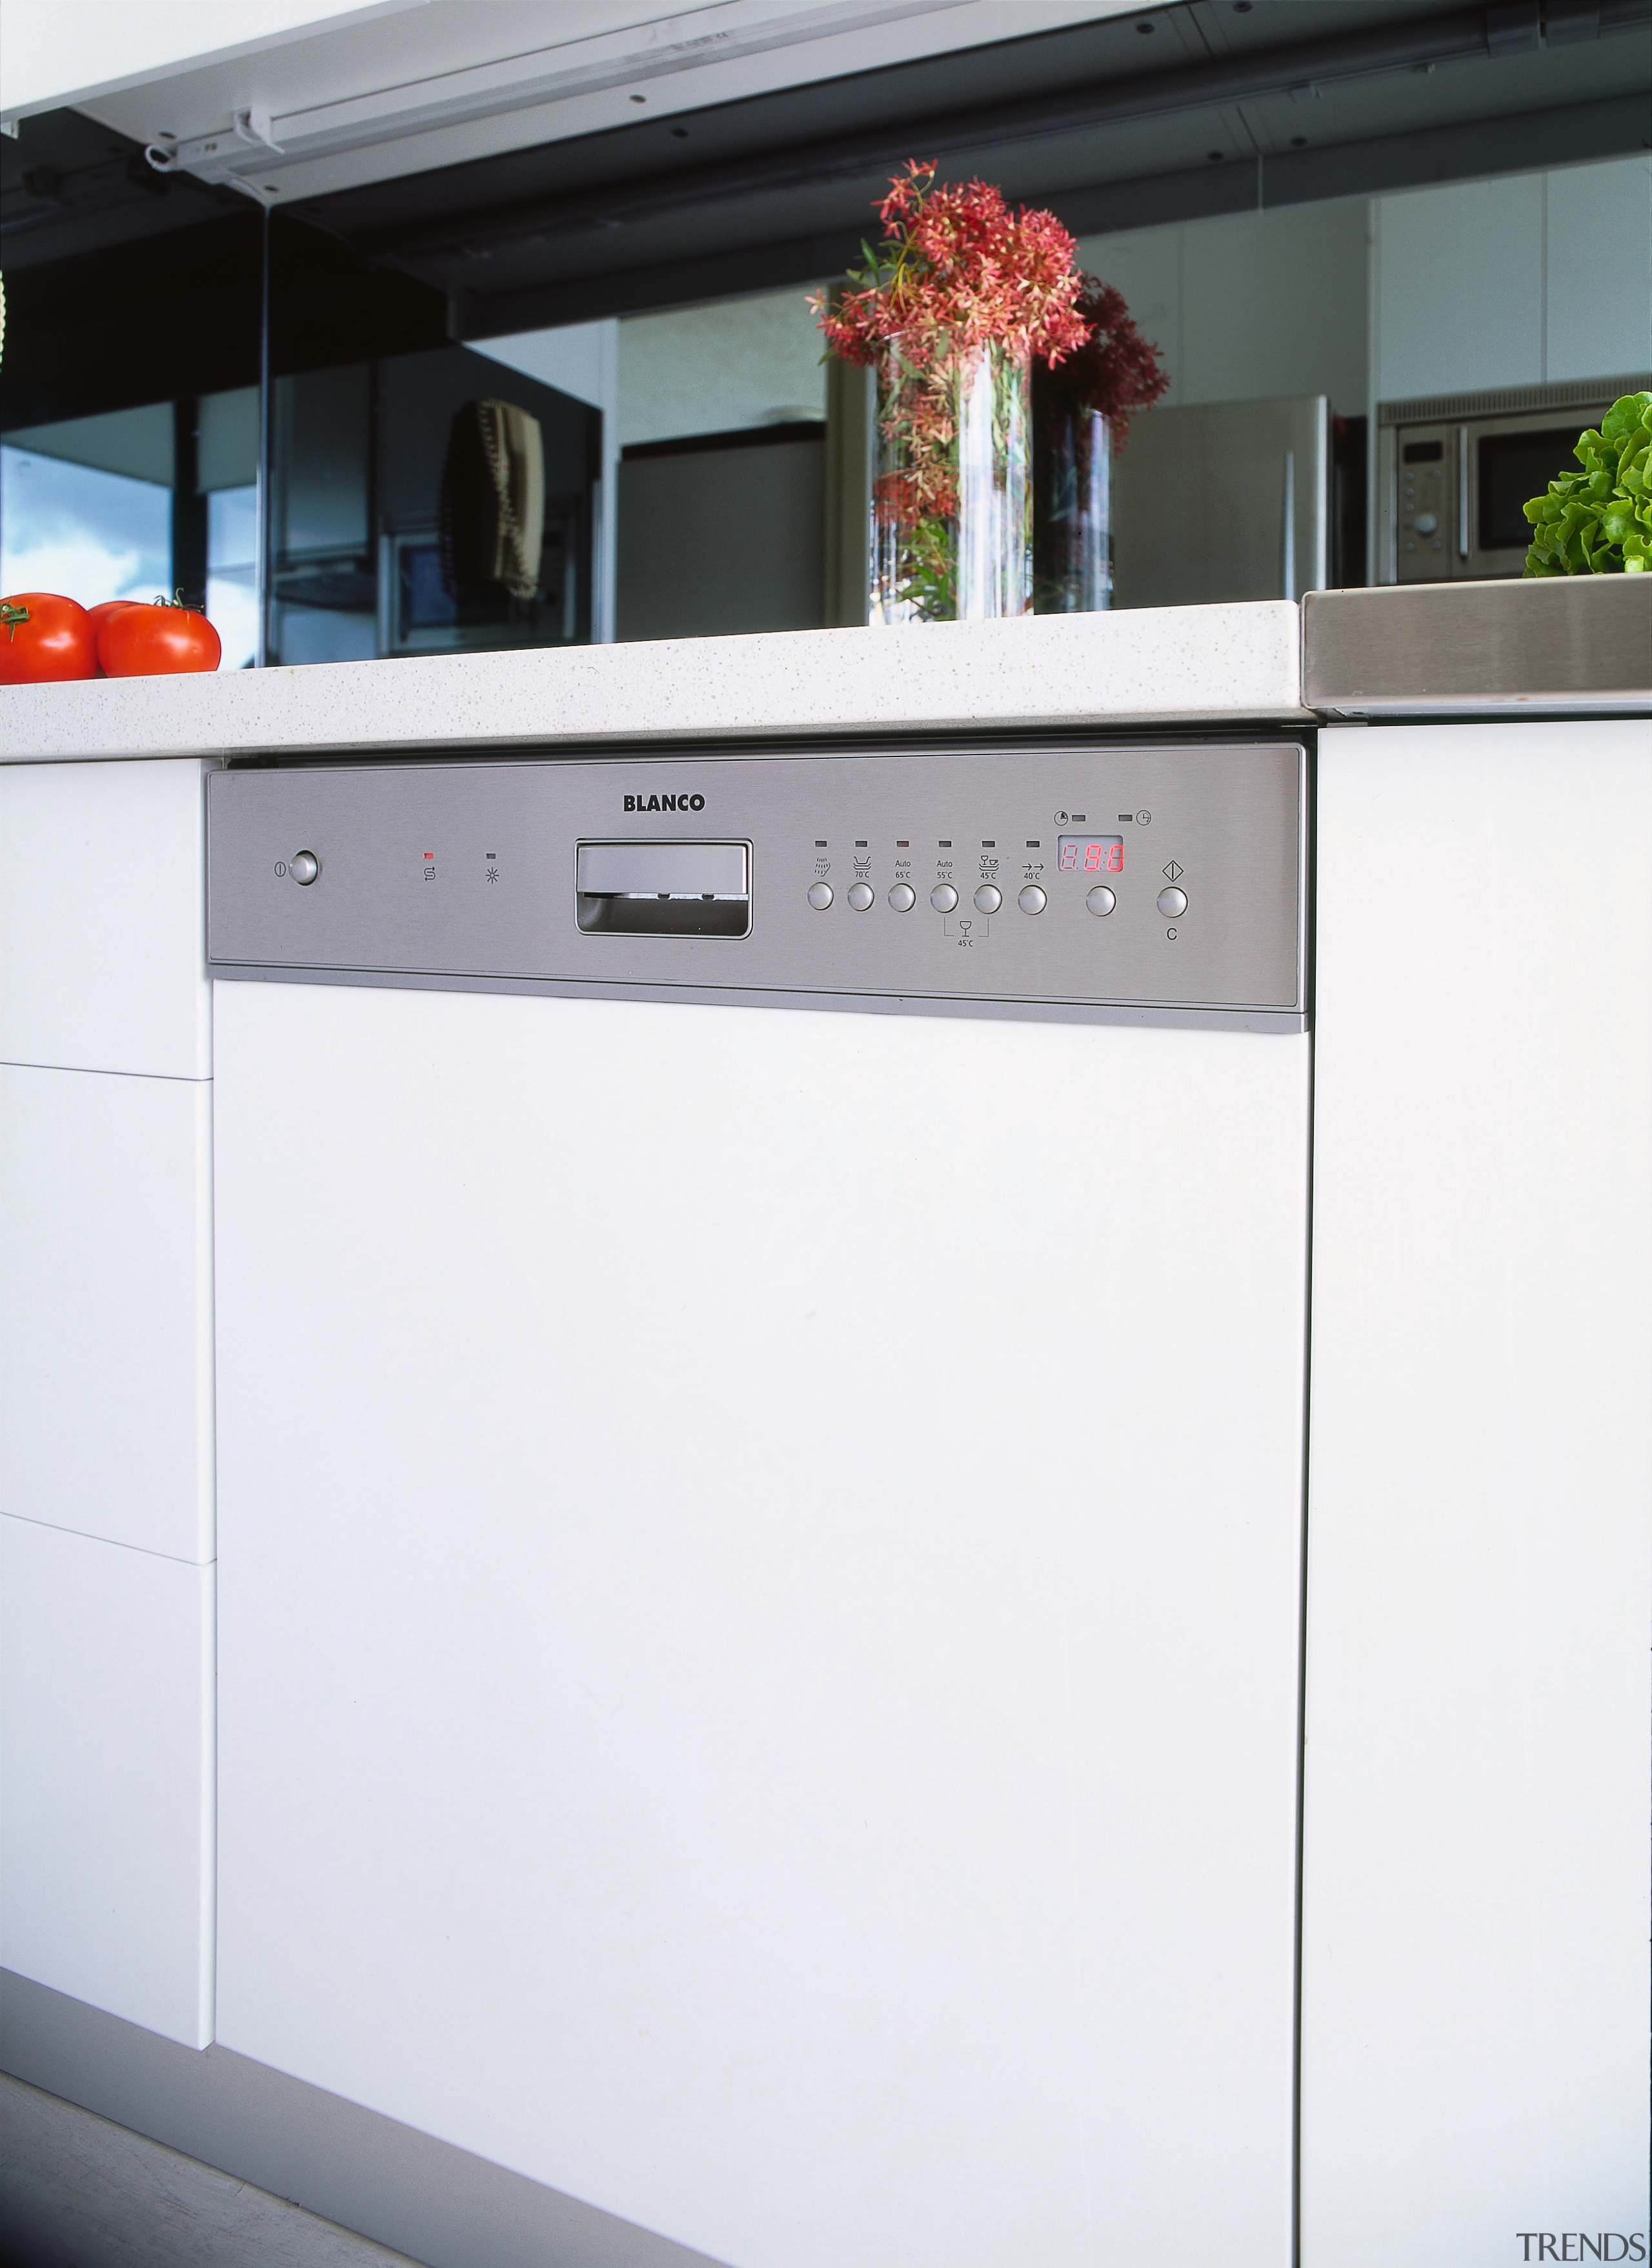 view of the Blanco dishwasher - view of home appliance, kitchen, kitchen appliance, kitchen stove, major appliance, product, product design, white